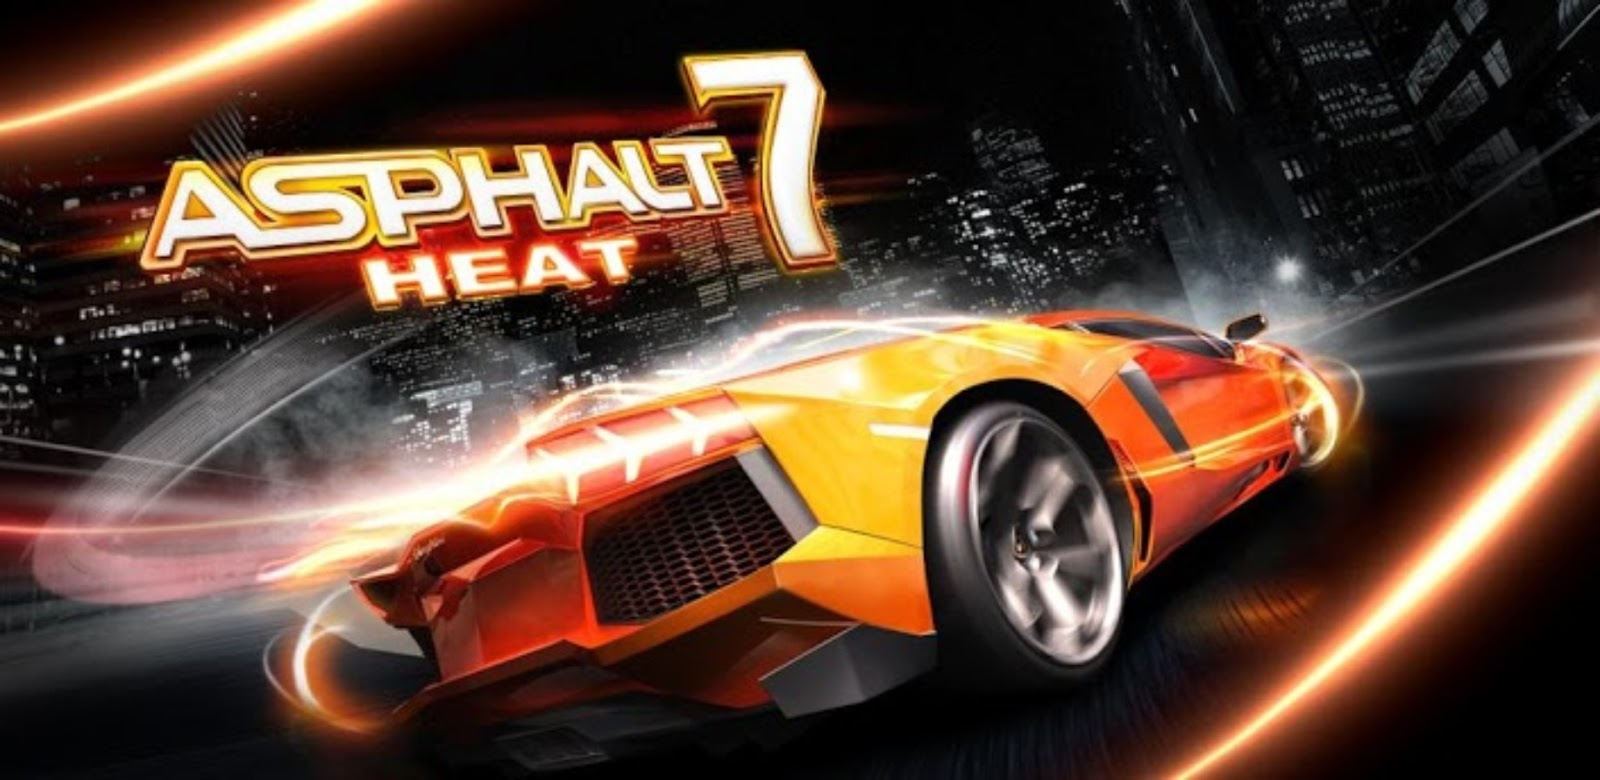 Free Download Asphalt 7 Heat PC Game for Windows 7/8/XP/Vista